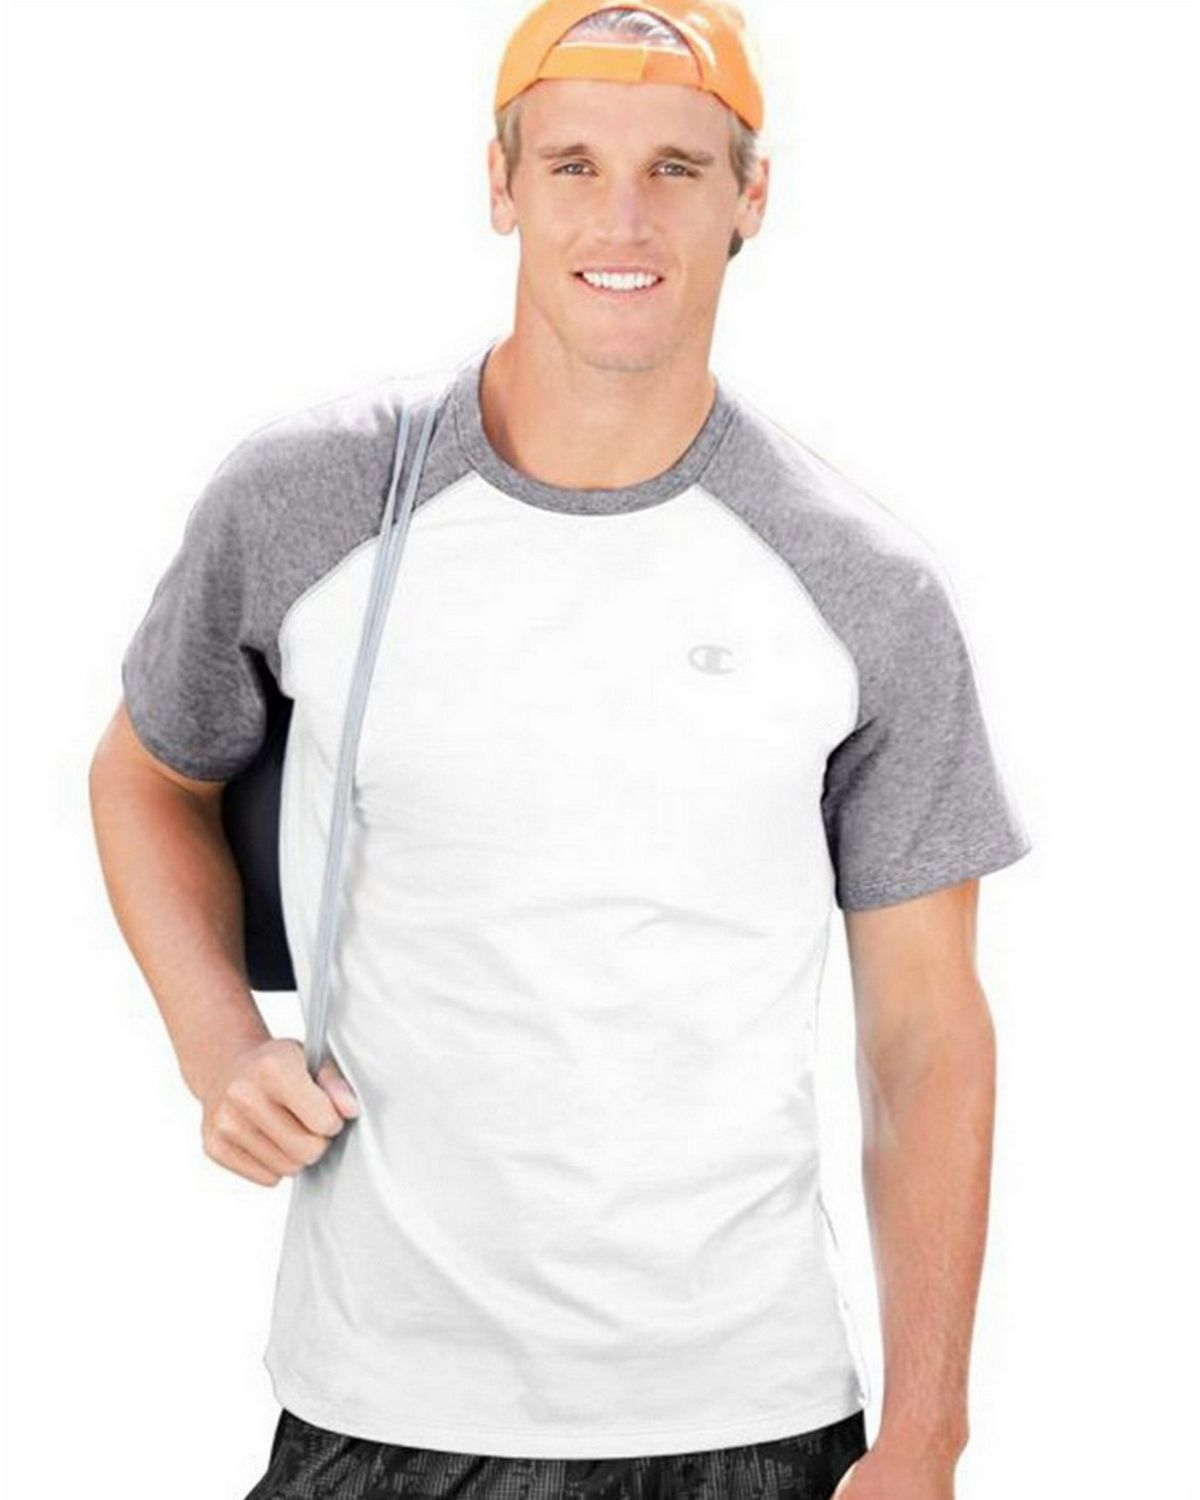 Champion T8822 Vapor Mens Tee - White/Oxford Grey - M T8822